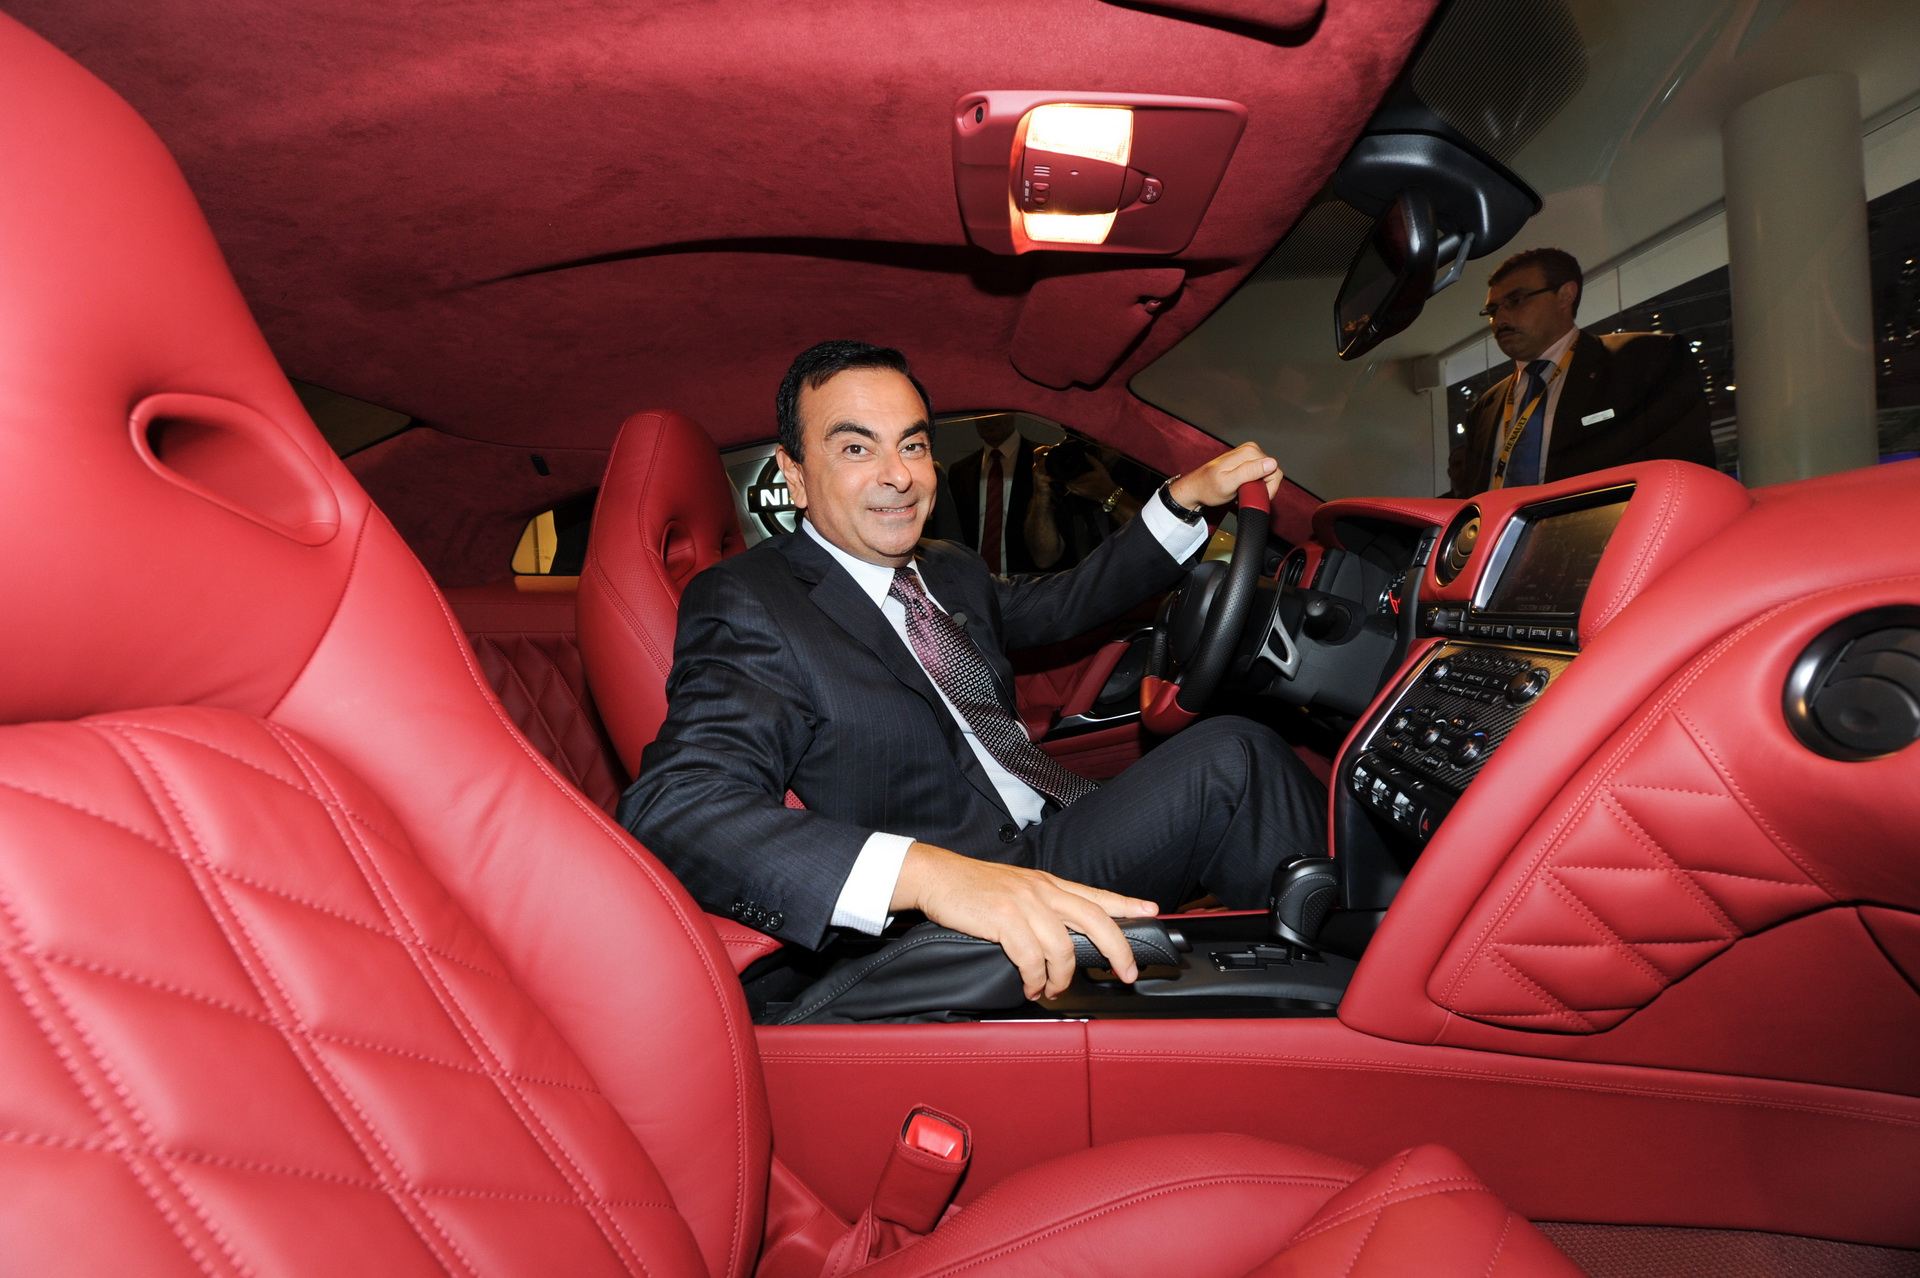 Nissan's Carlos Ghosn arrested over allegations of 'significant' financial misconduct